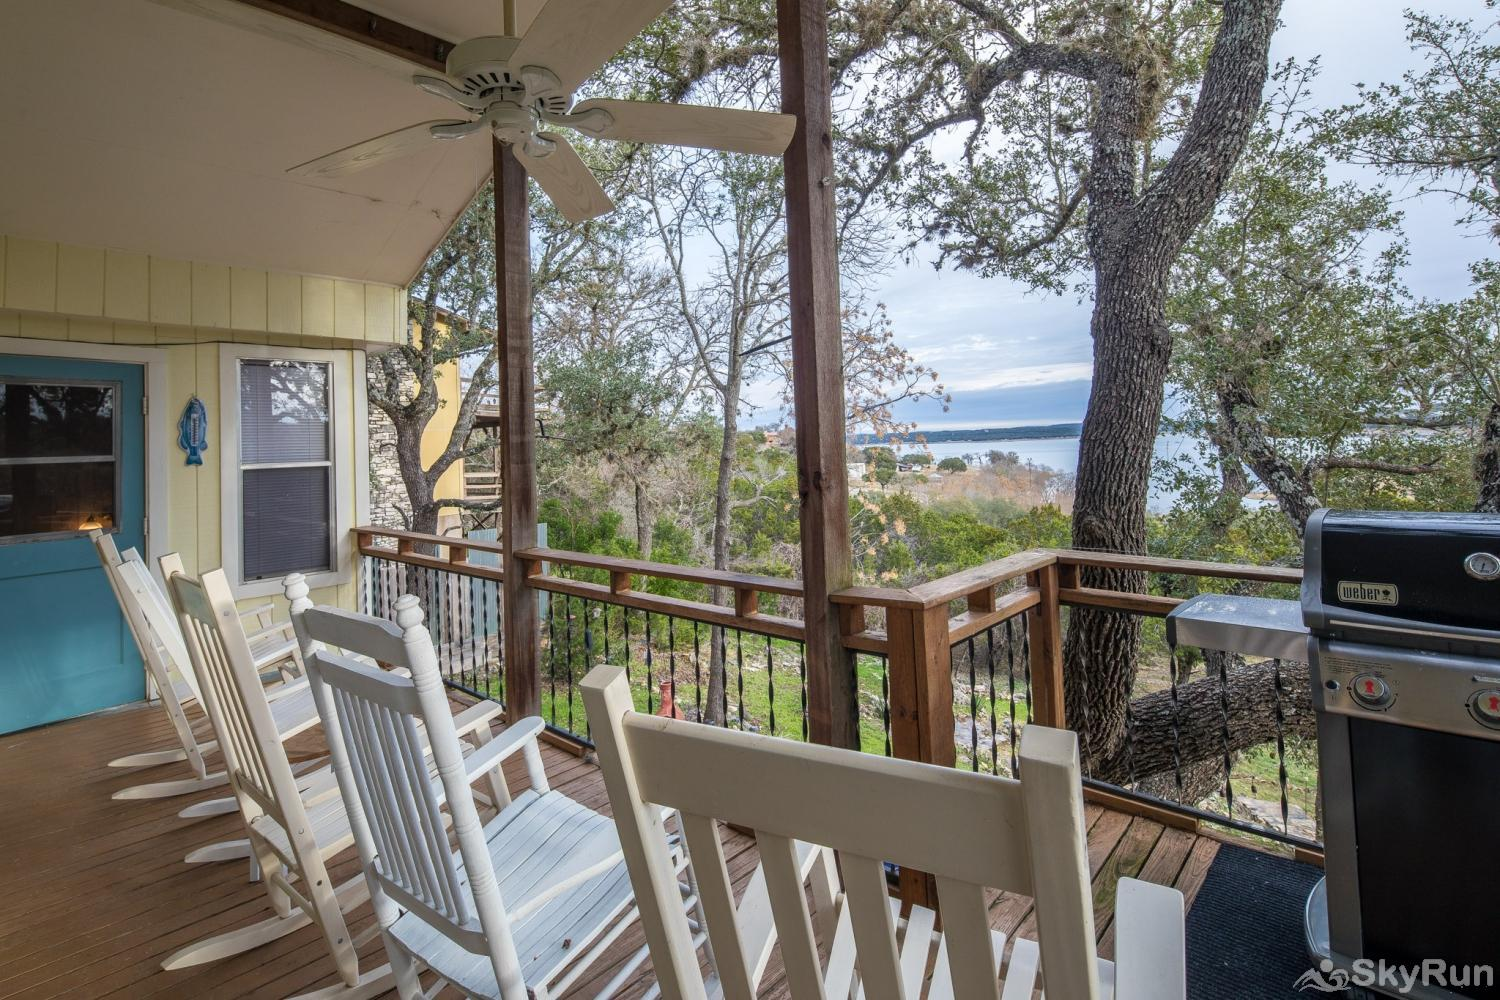 TEXAS ROSE LODGE Deck space with comfortable rocking chairs